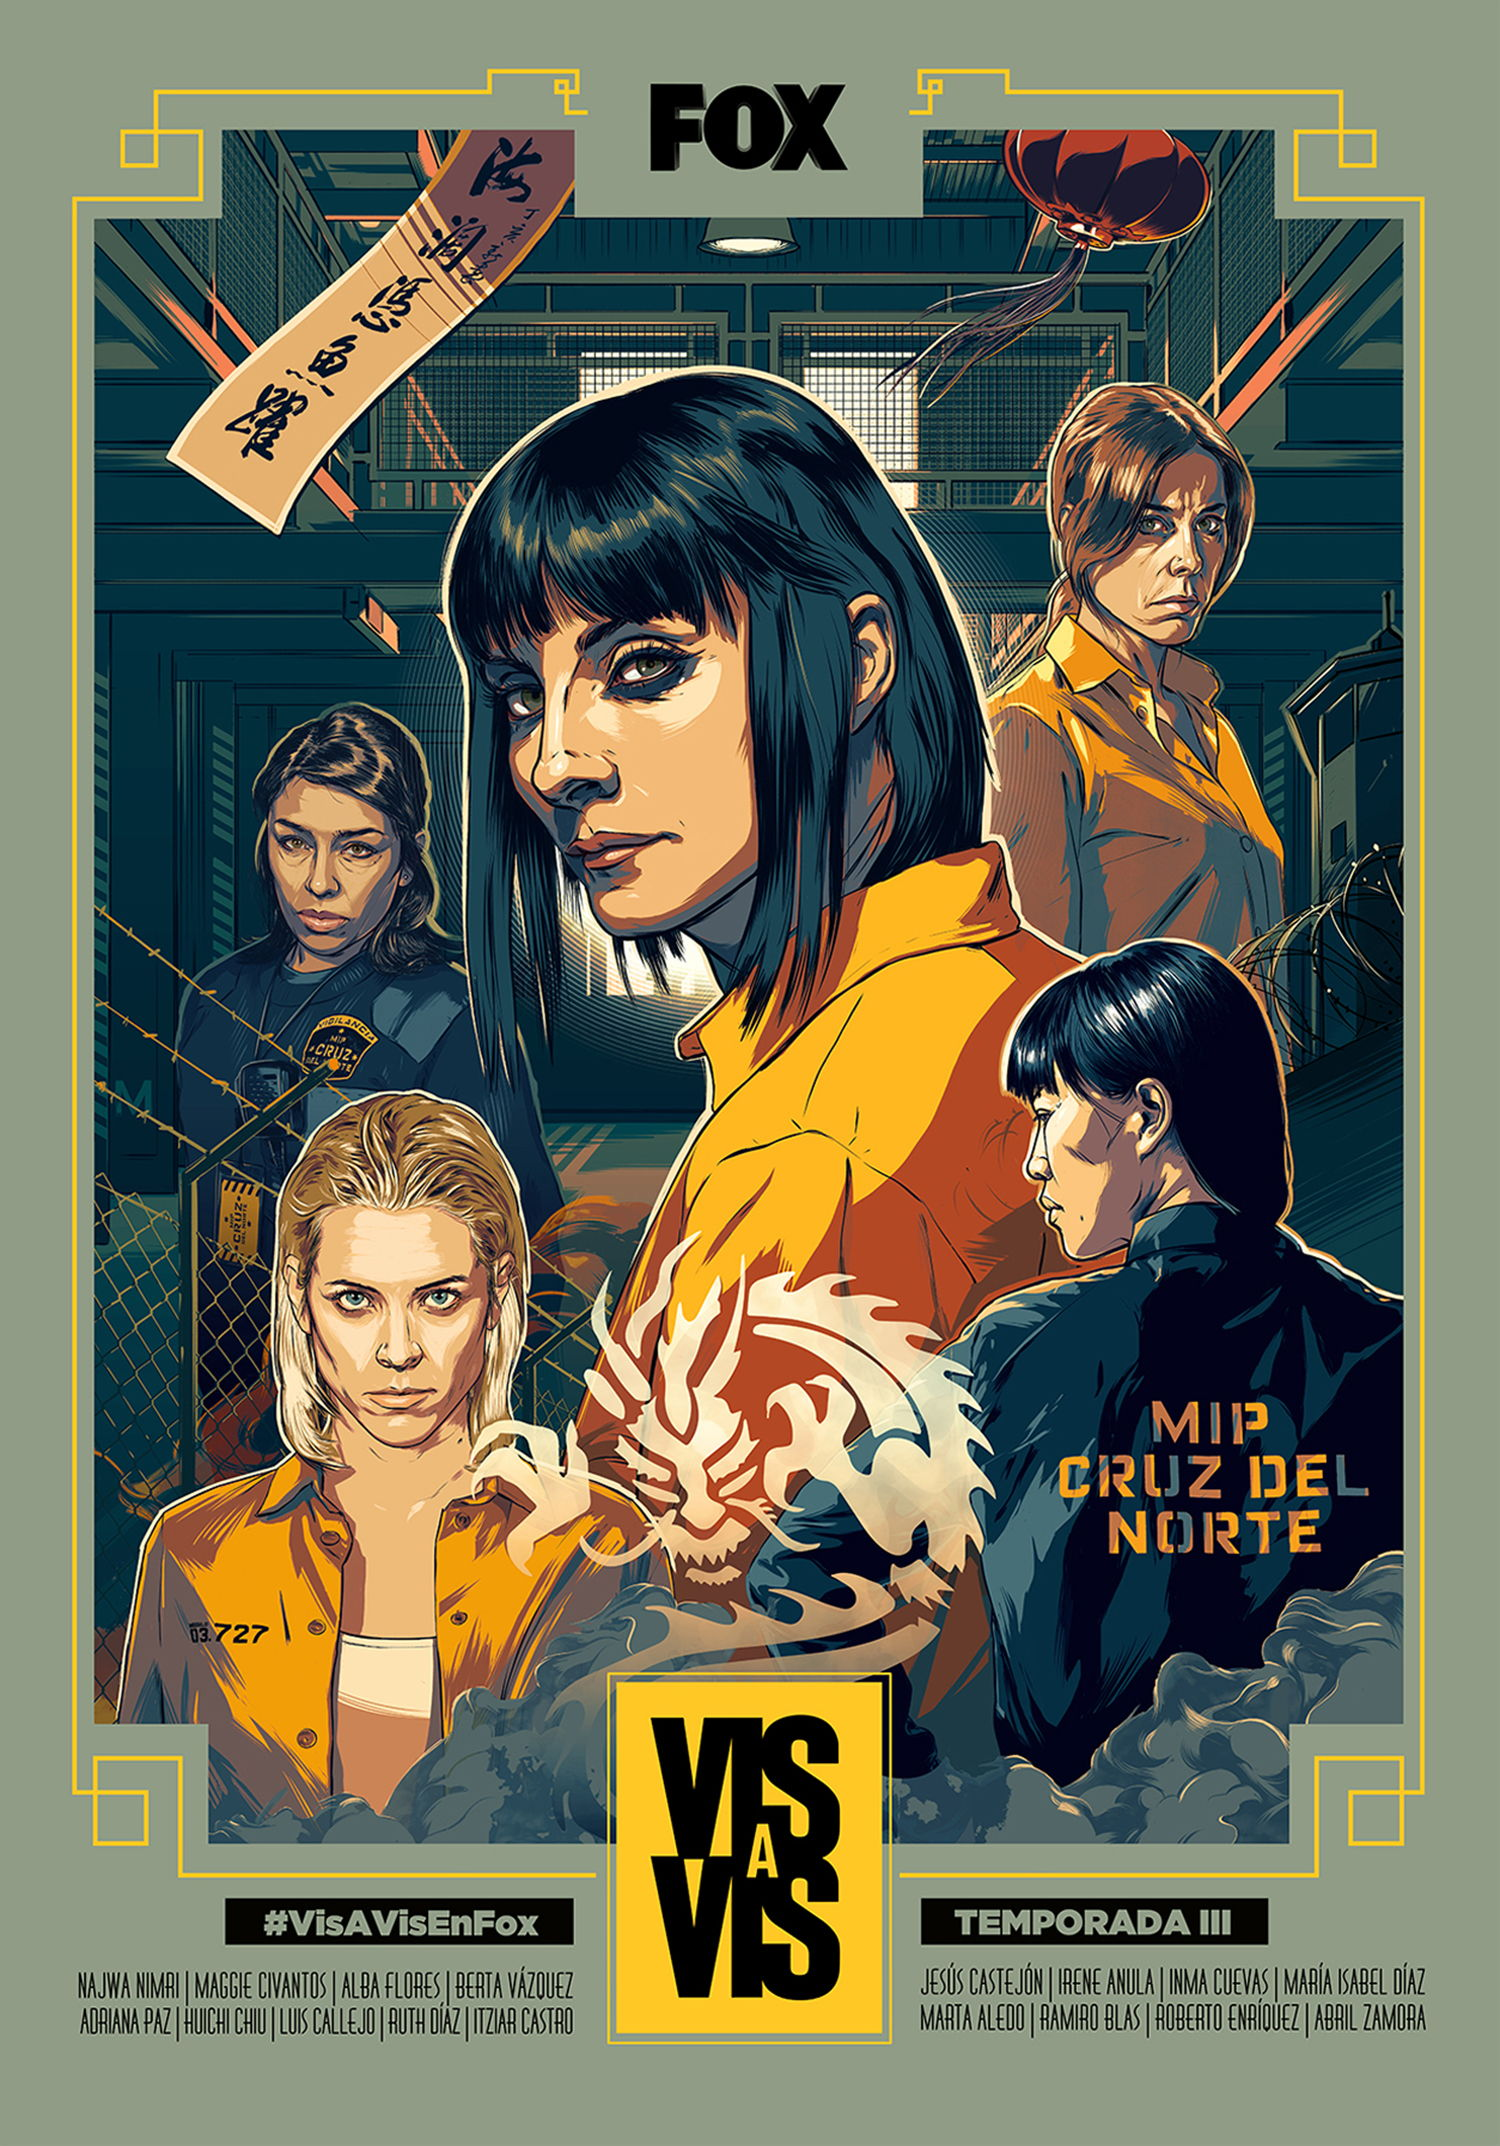 tv series poster, kill bill style, Vis a Vis Season 3 Posters Campaign by Fox Networks Group Spain